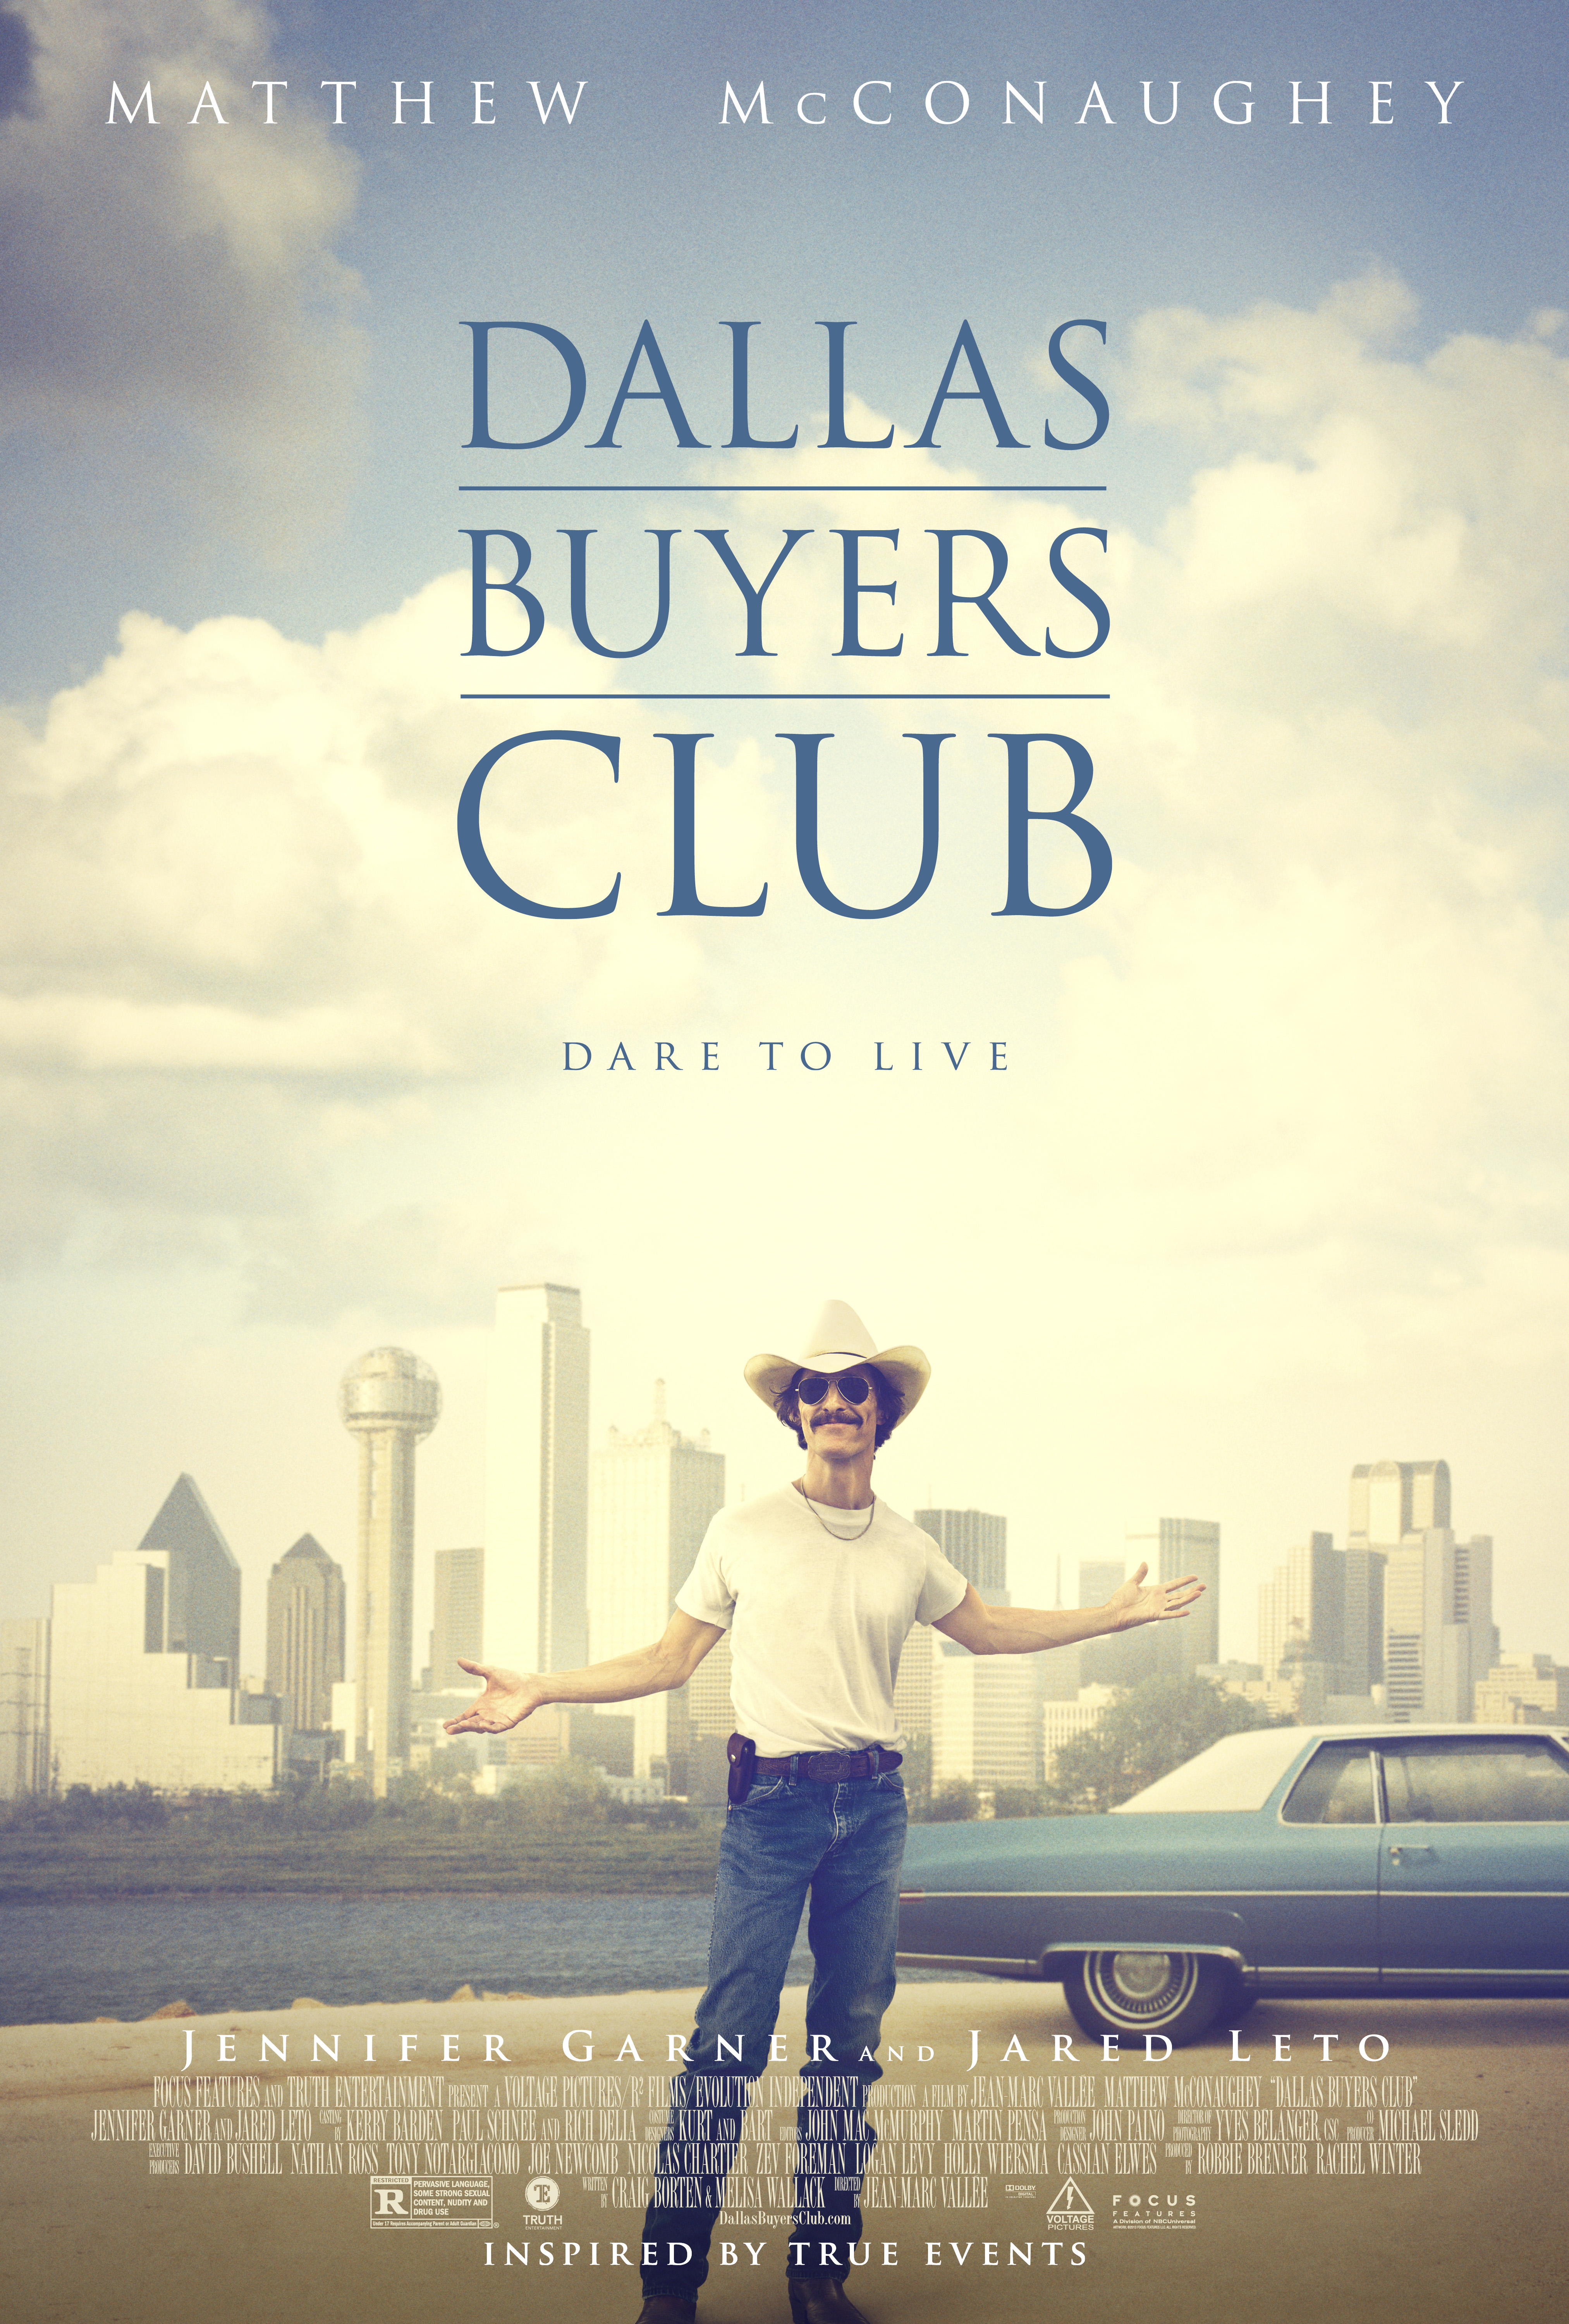 DBCOS 156 V7 Dallas Buyers Club Receives New Official Poster and Clips